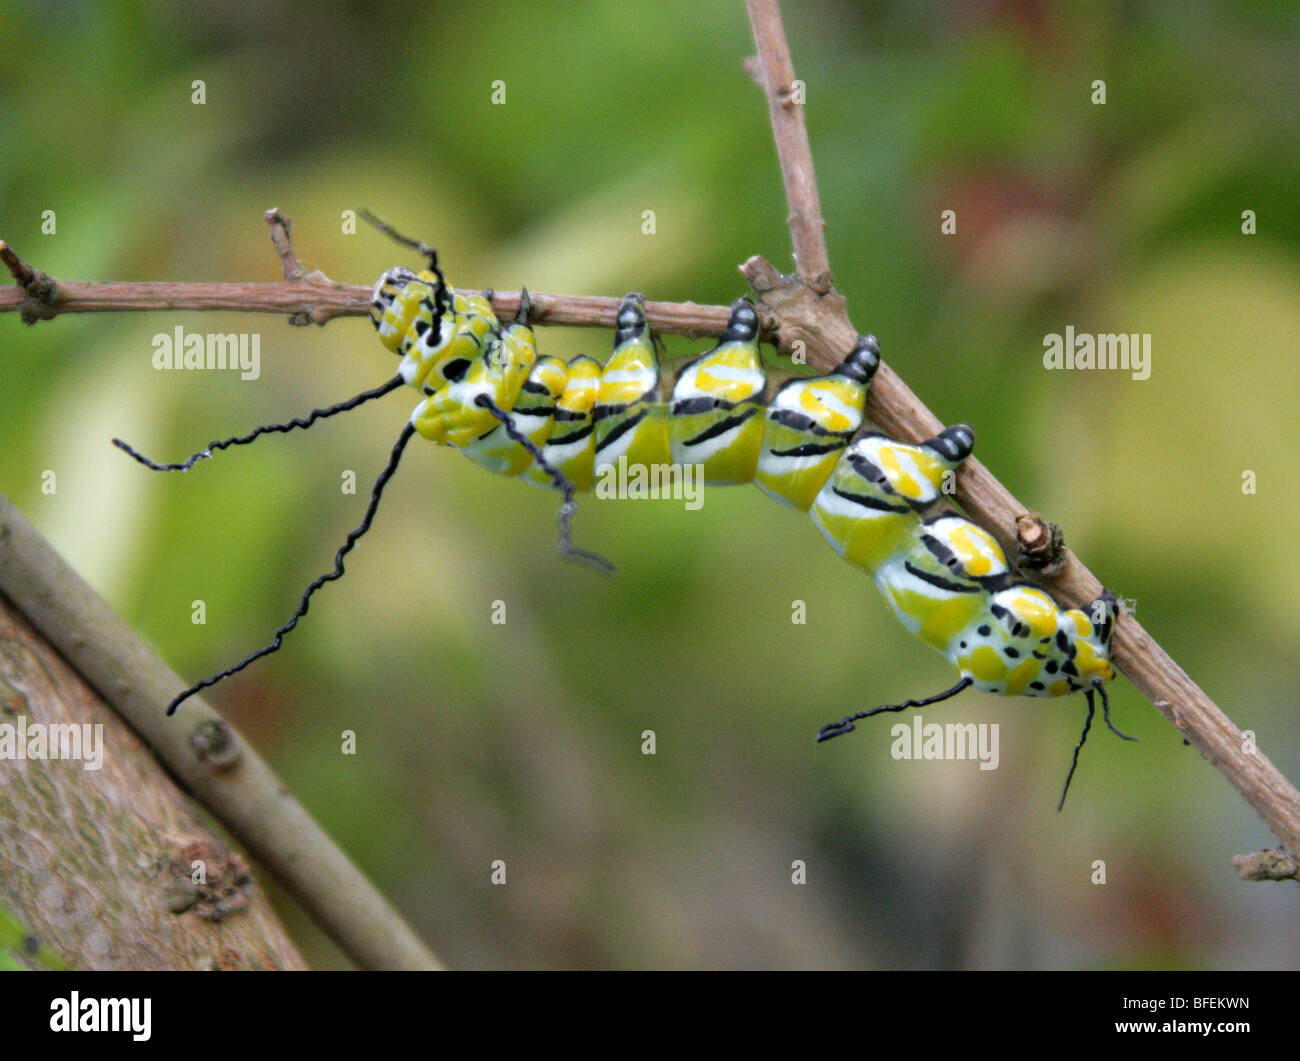 Caterpillar of the Brahmaea wallichii Moth. Brahmaeidae, Lepidoptera. North of India, Myanmar, China, Taiwan and - Stock Image